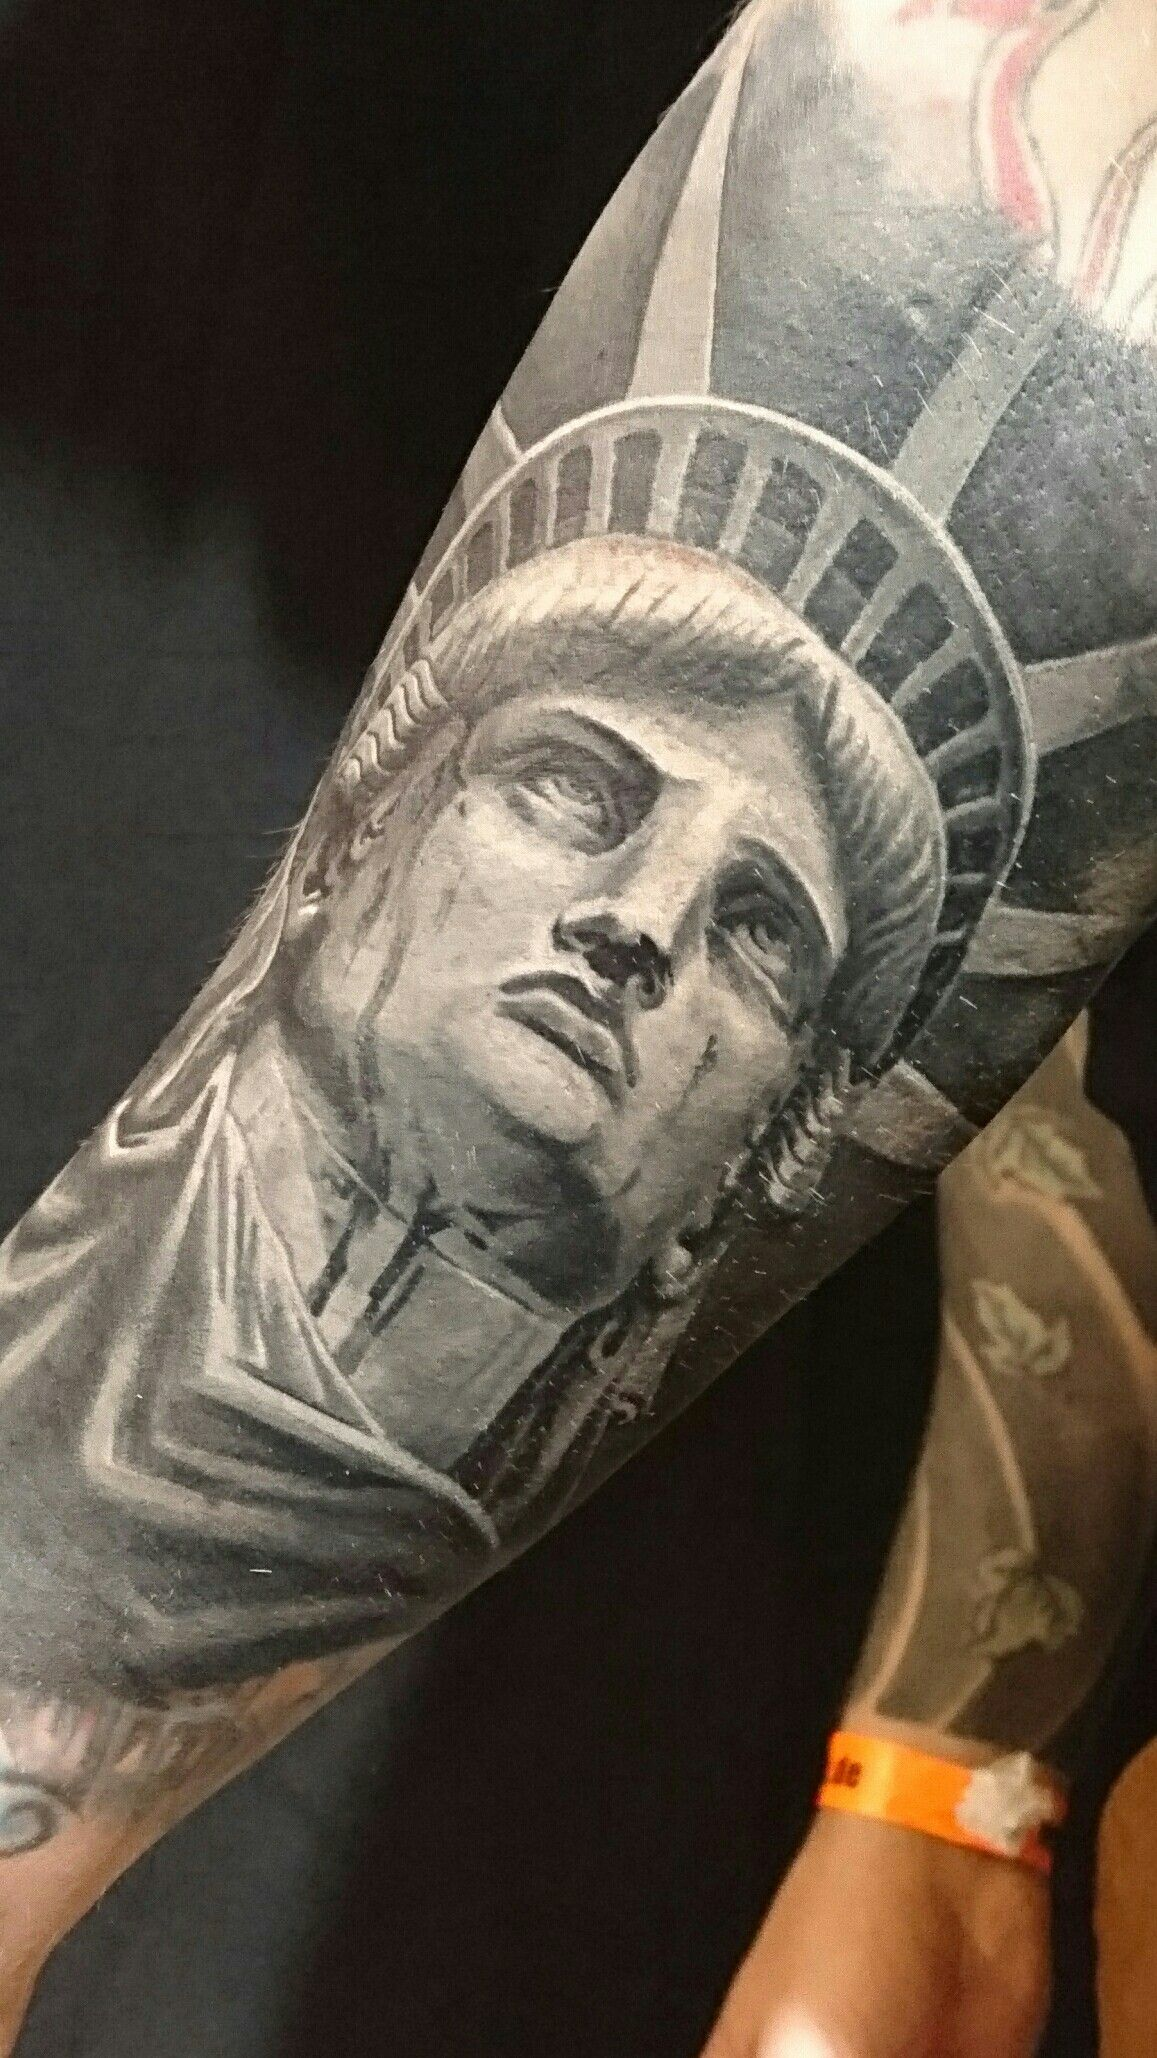 3c3faea71f960 Statue of liberty tattoo | Tattoos | Liberty tattoo, Statue of ...